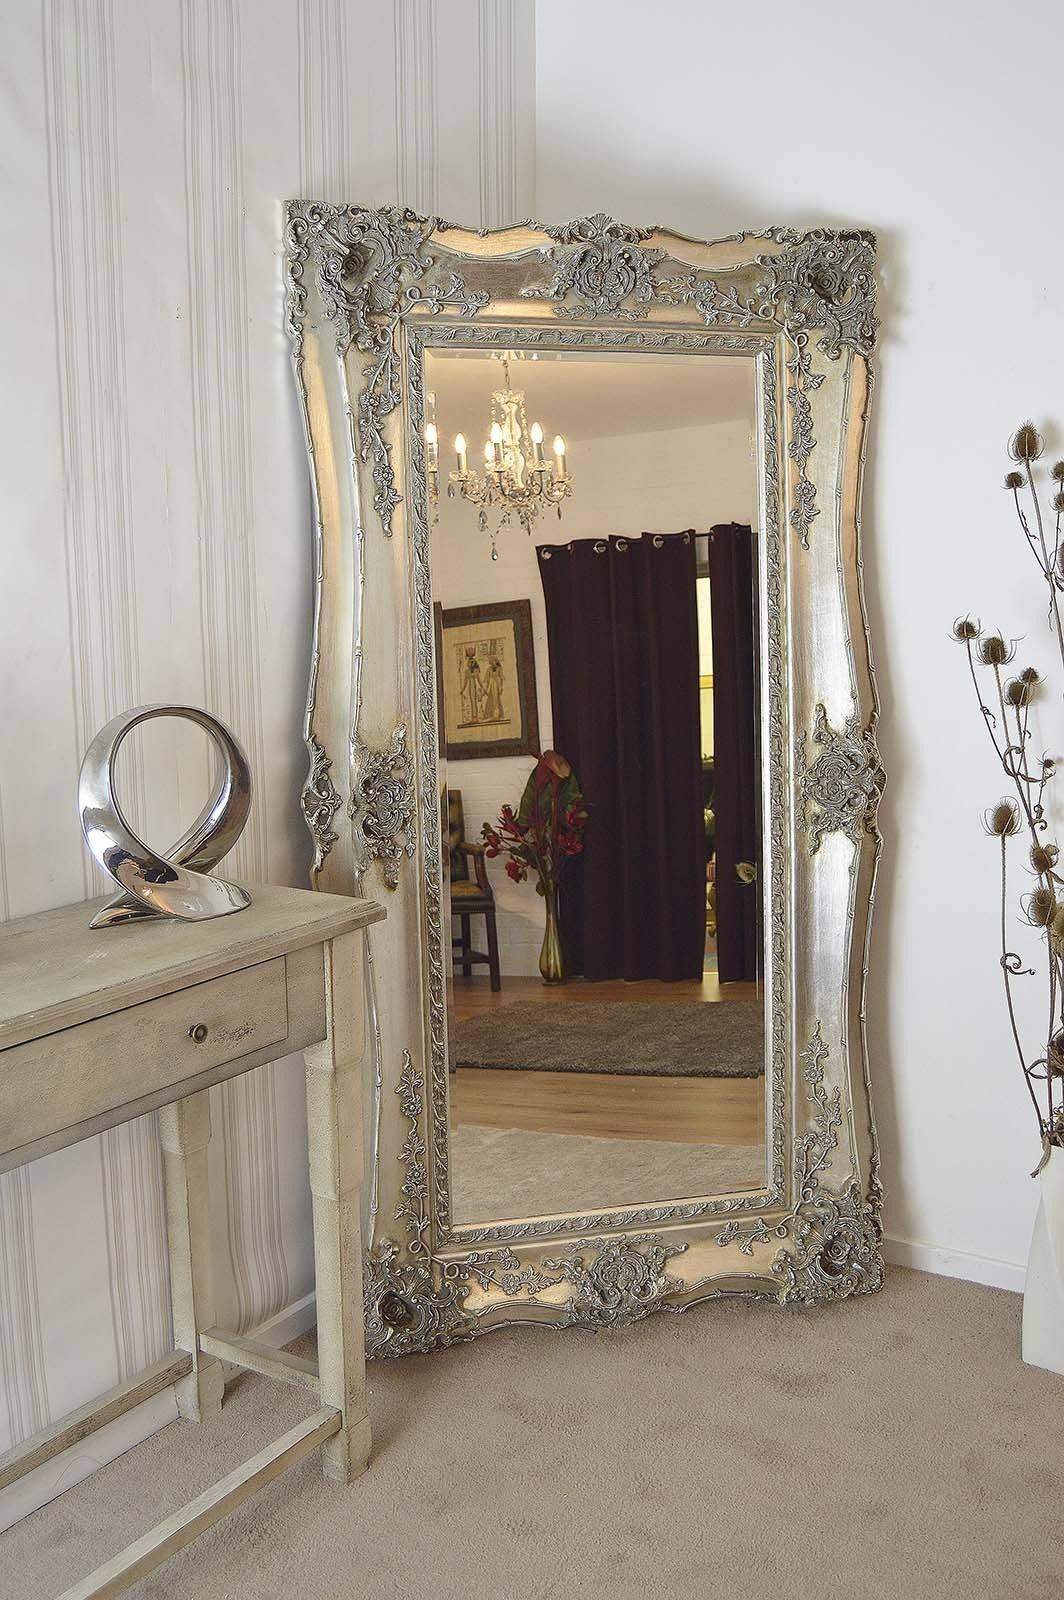 Classic Impression On Antique Wall Mirrors | Vwho with Cream Ornate Mirrors (Image 2 of 25)